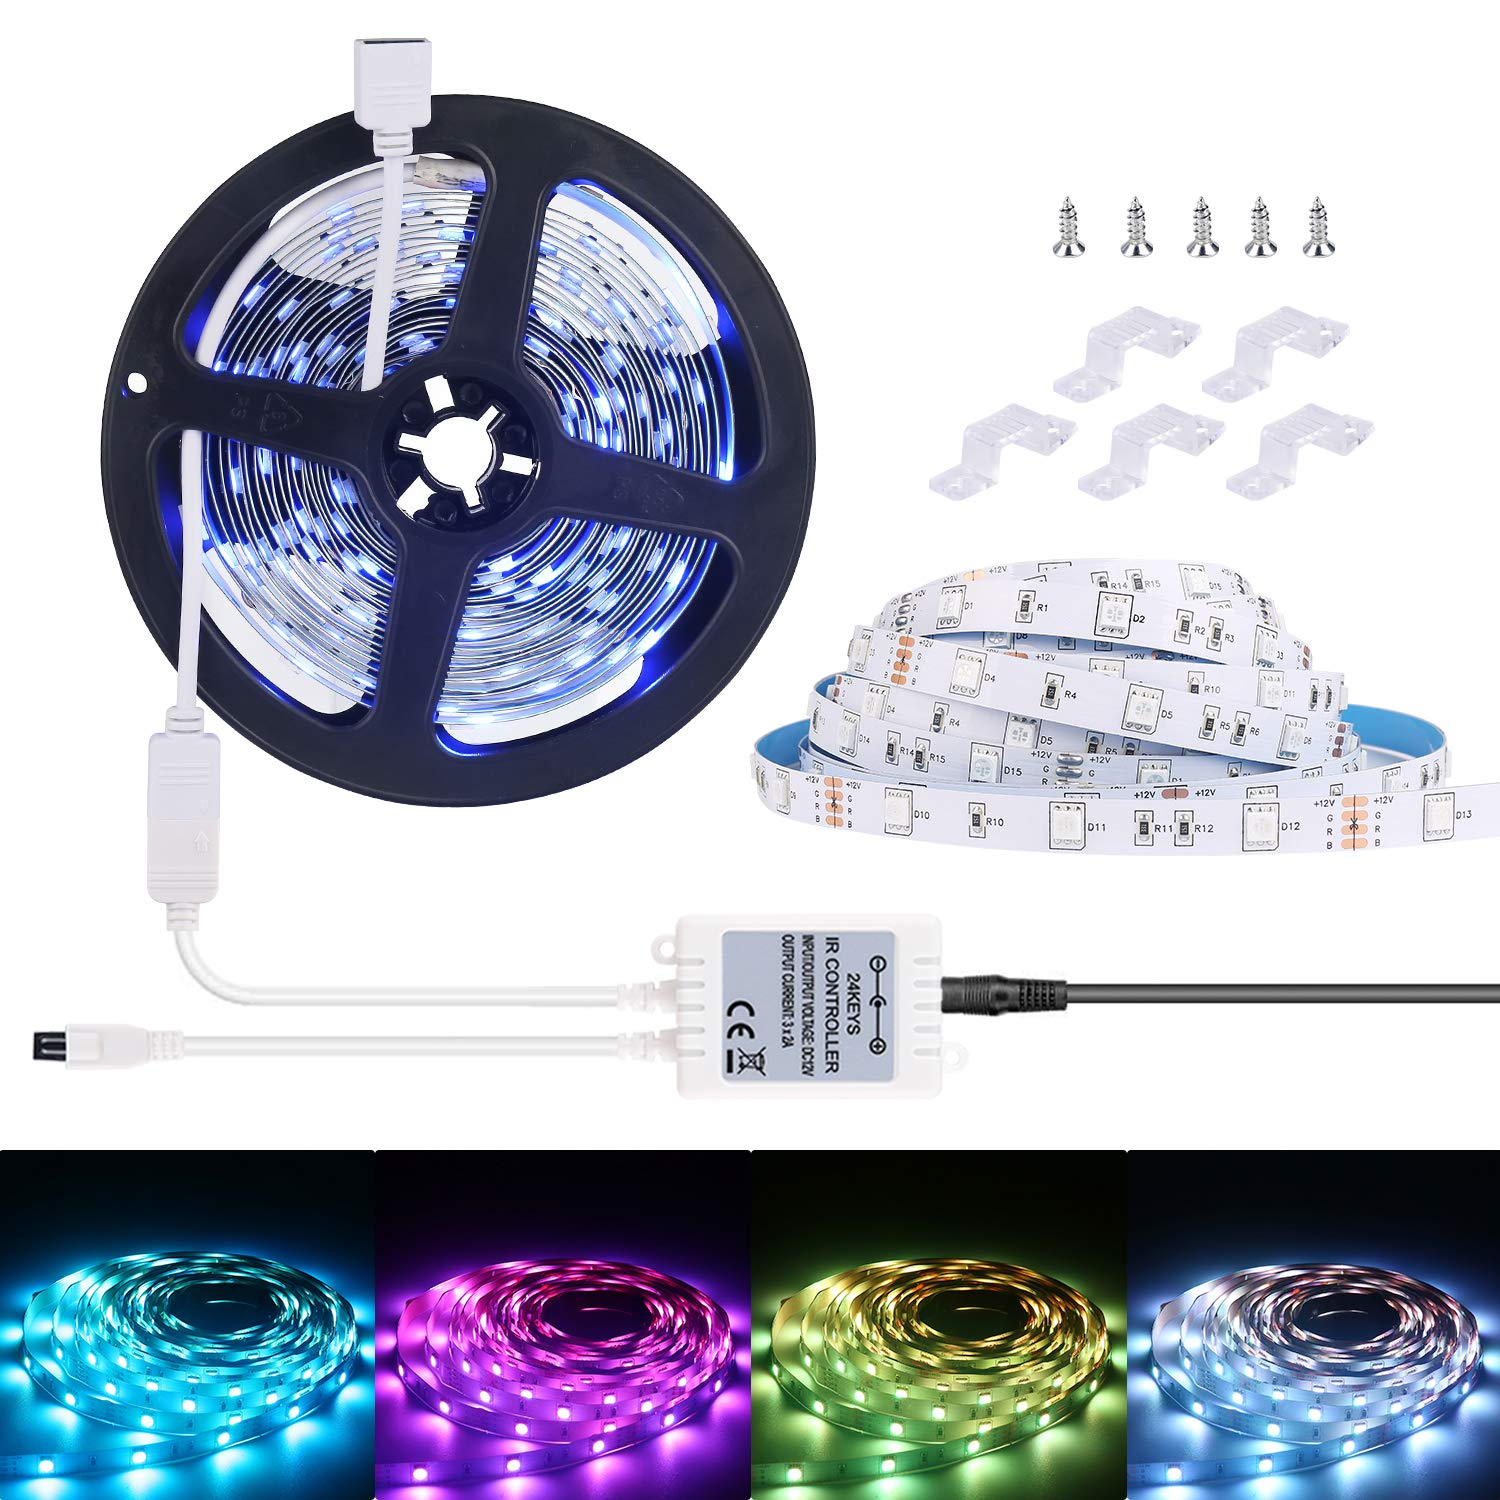 ALED LIGHT LED Flexible Light Strip 32.8Ft//2x5M 5050 150LEDs Non-Waterproof RGB Strip Lighting with Remote DC 12V Power Supply for DIY//Christmas//Party//Decoration LED Strip Lights Kit 2 Pack